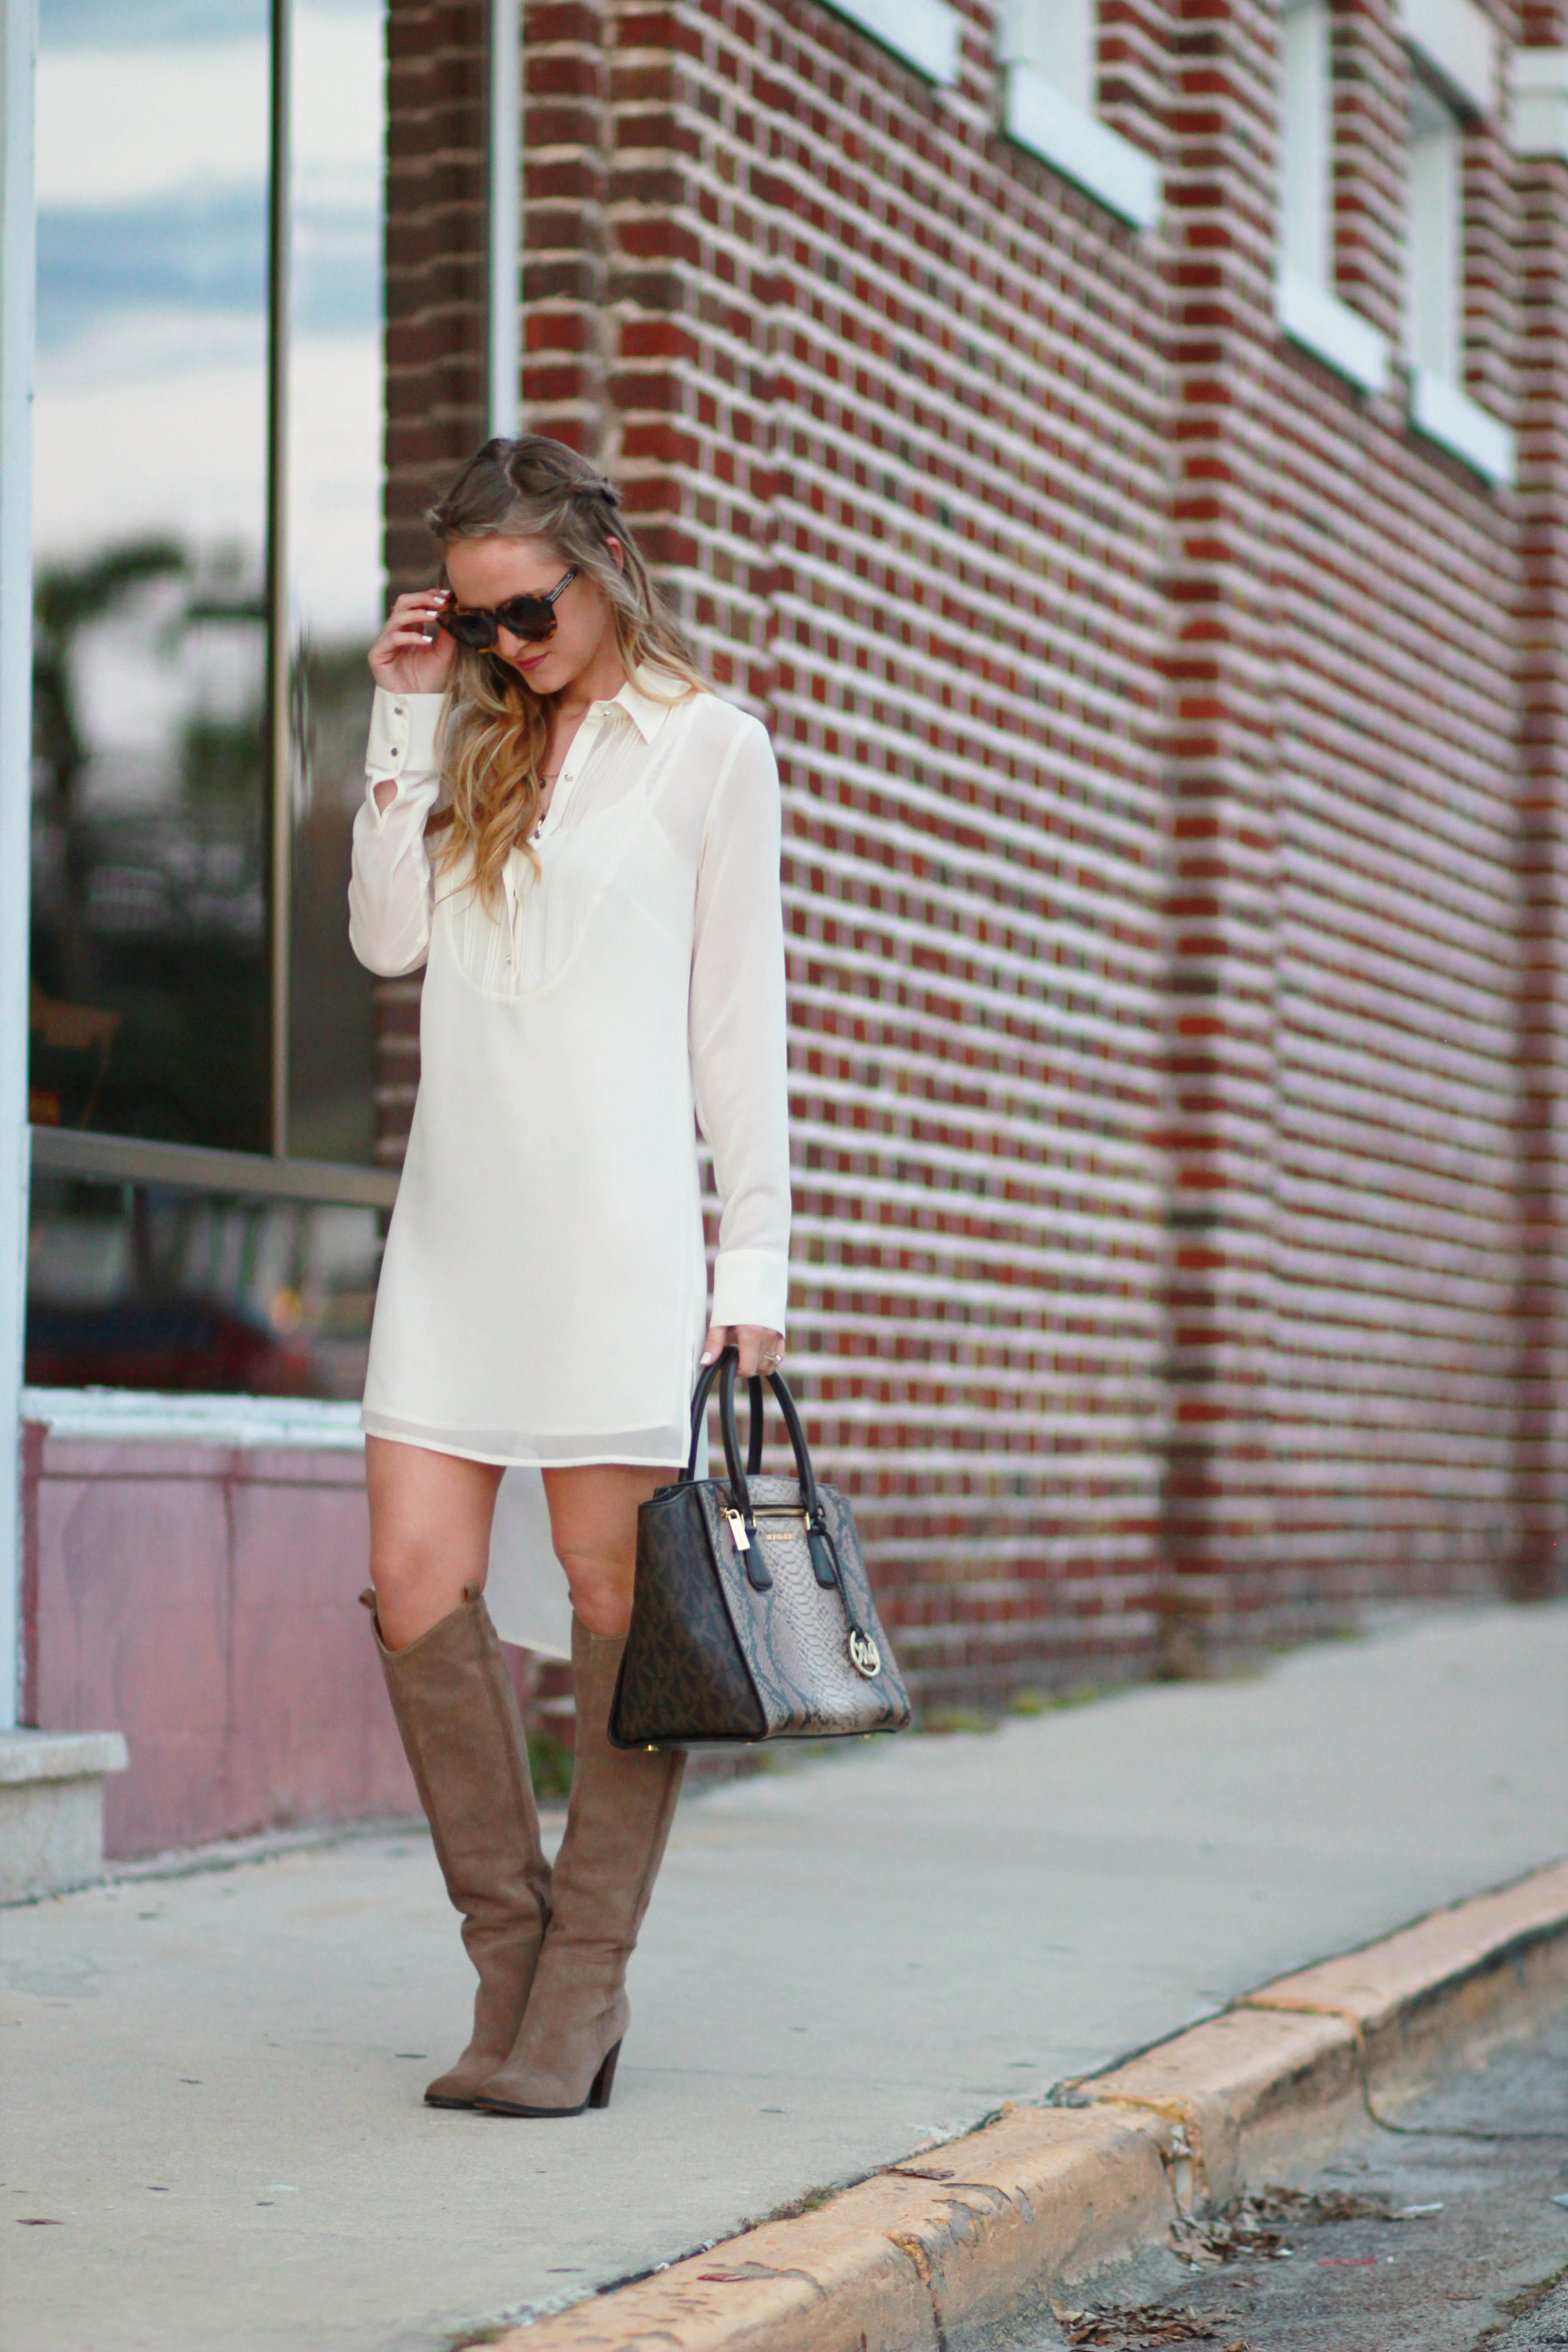 orlando, florida fashion blog styles bcbgeneration dress, dolce vita boots, karen walker sunglasses, and michael kors bag for a casual winter outfit